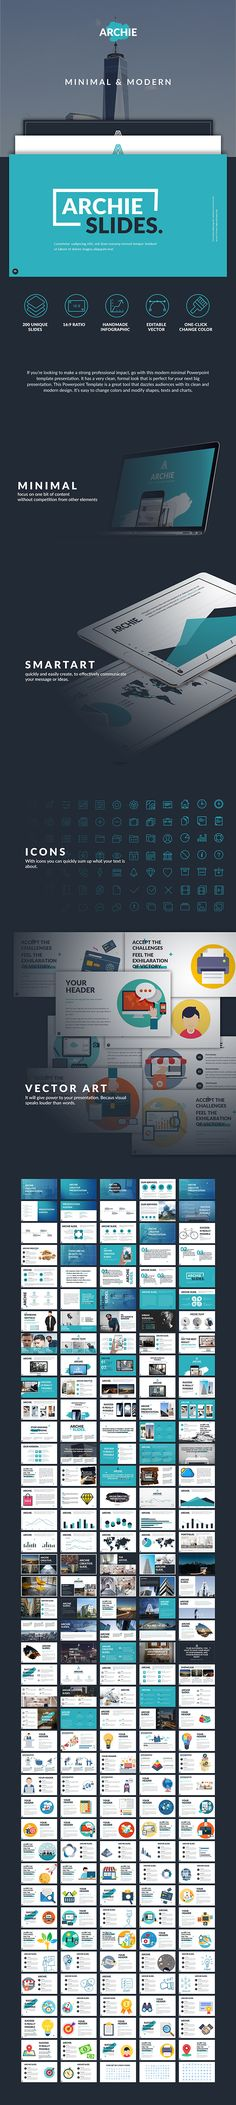 Ppt Design     Infographic    Ppt